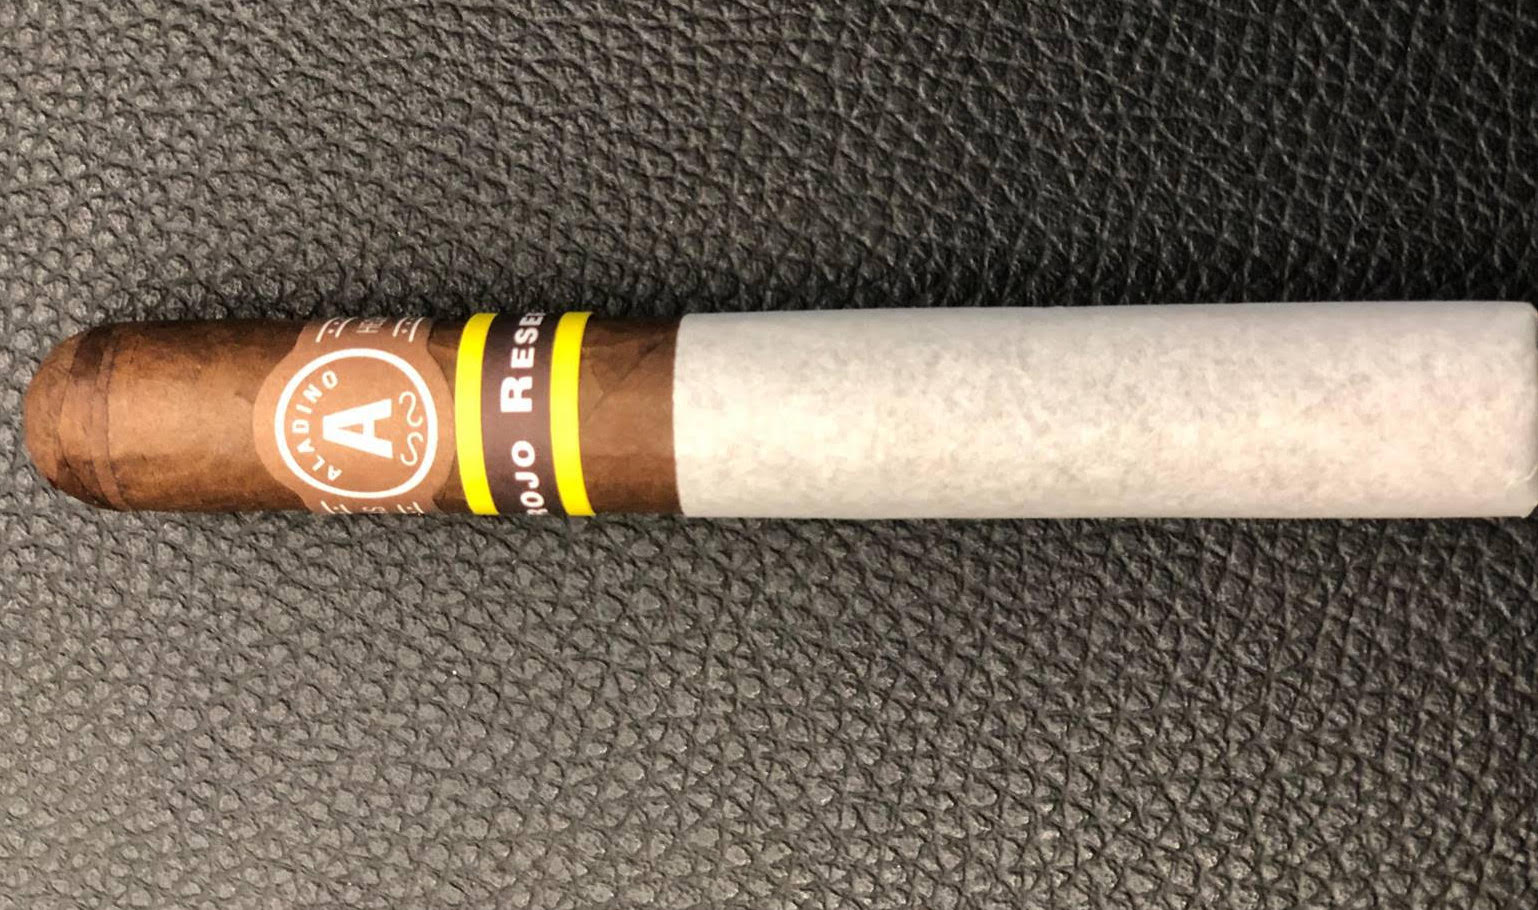 Cigar News: JRE Tobacco Co. to Introduce Limited Aladino Corojo Reserva No. 4